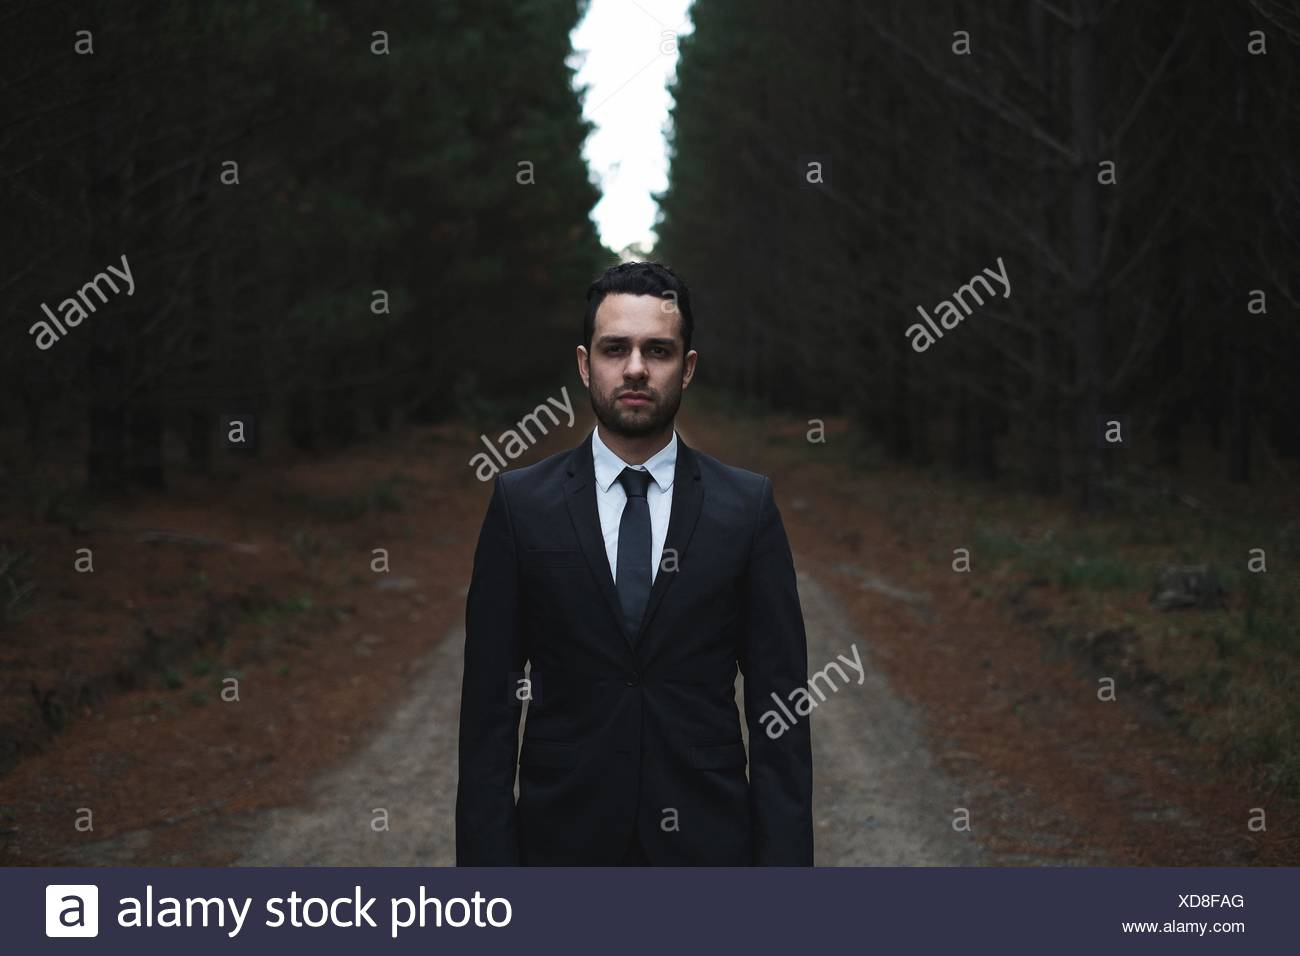 Man Wearing Suit In Forest - Stock Image